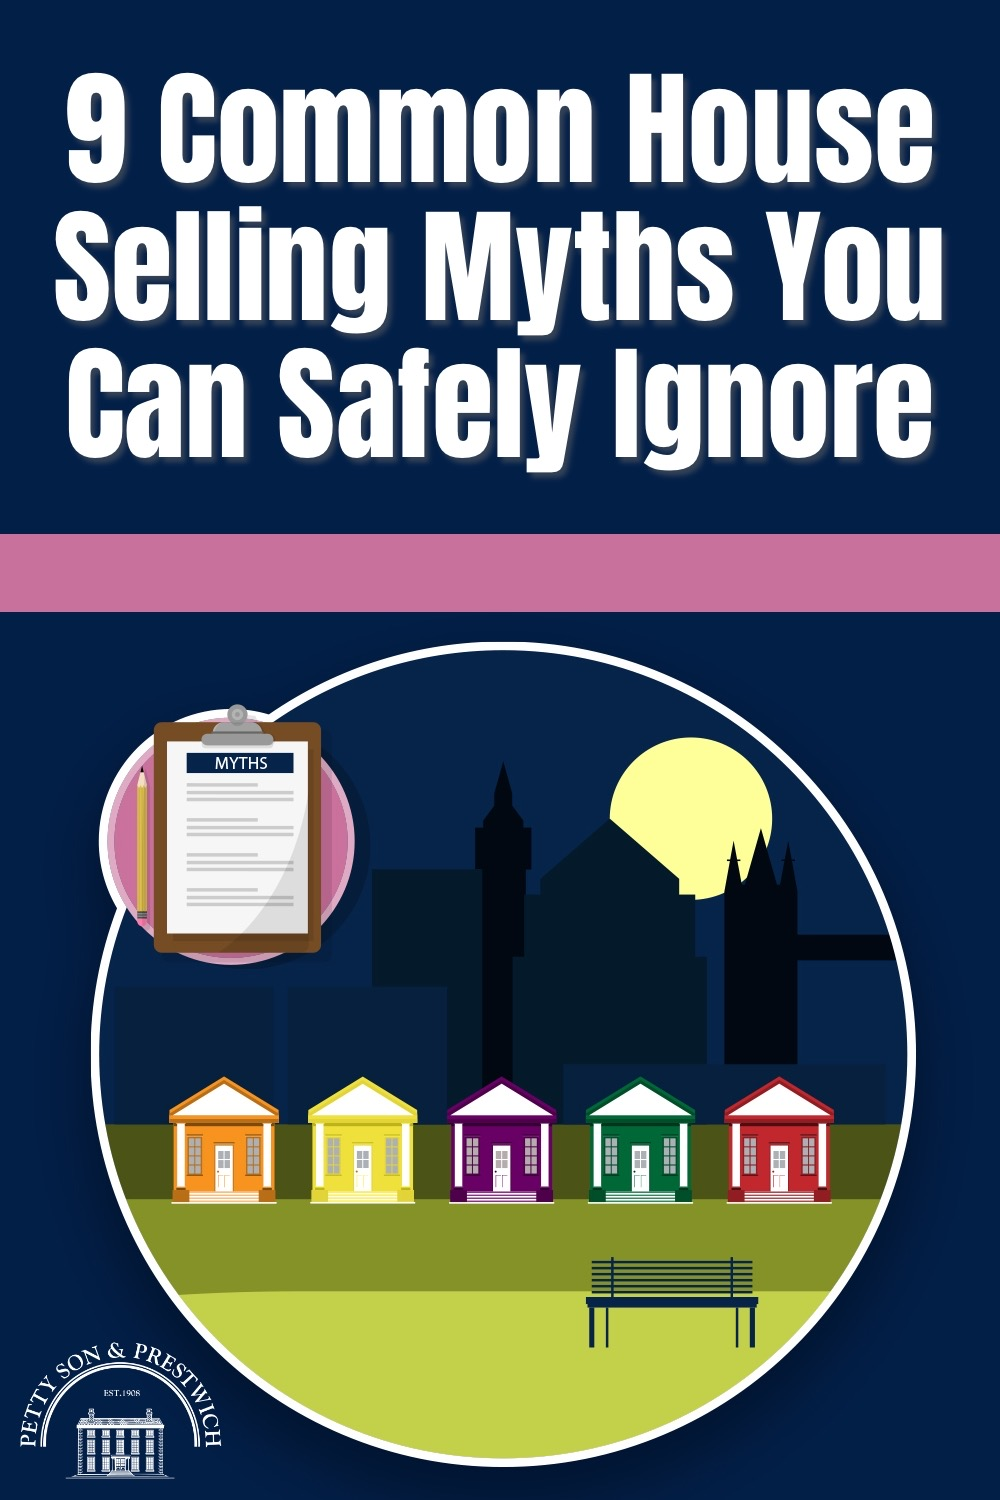 common house selling myths